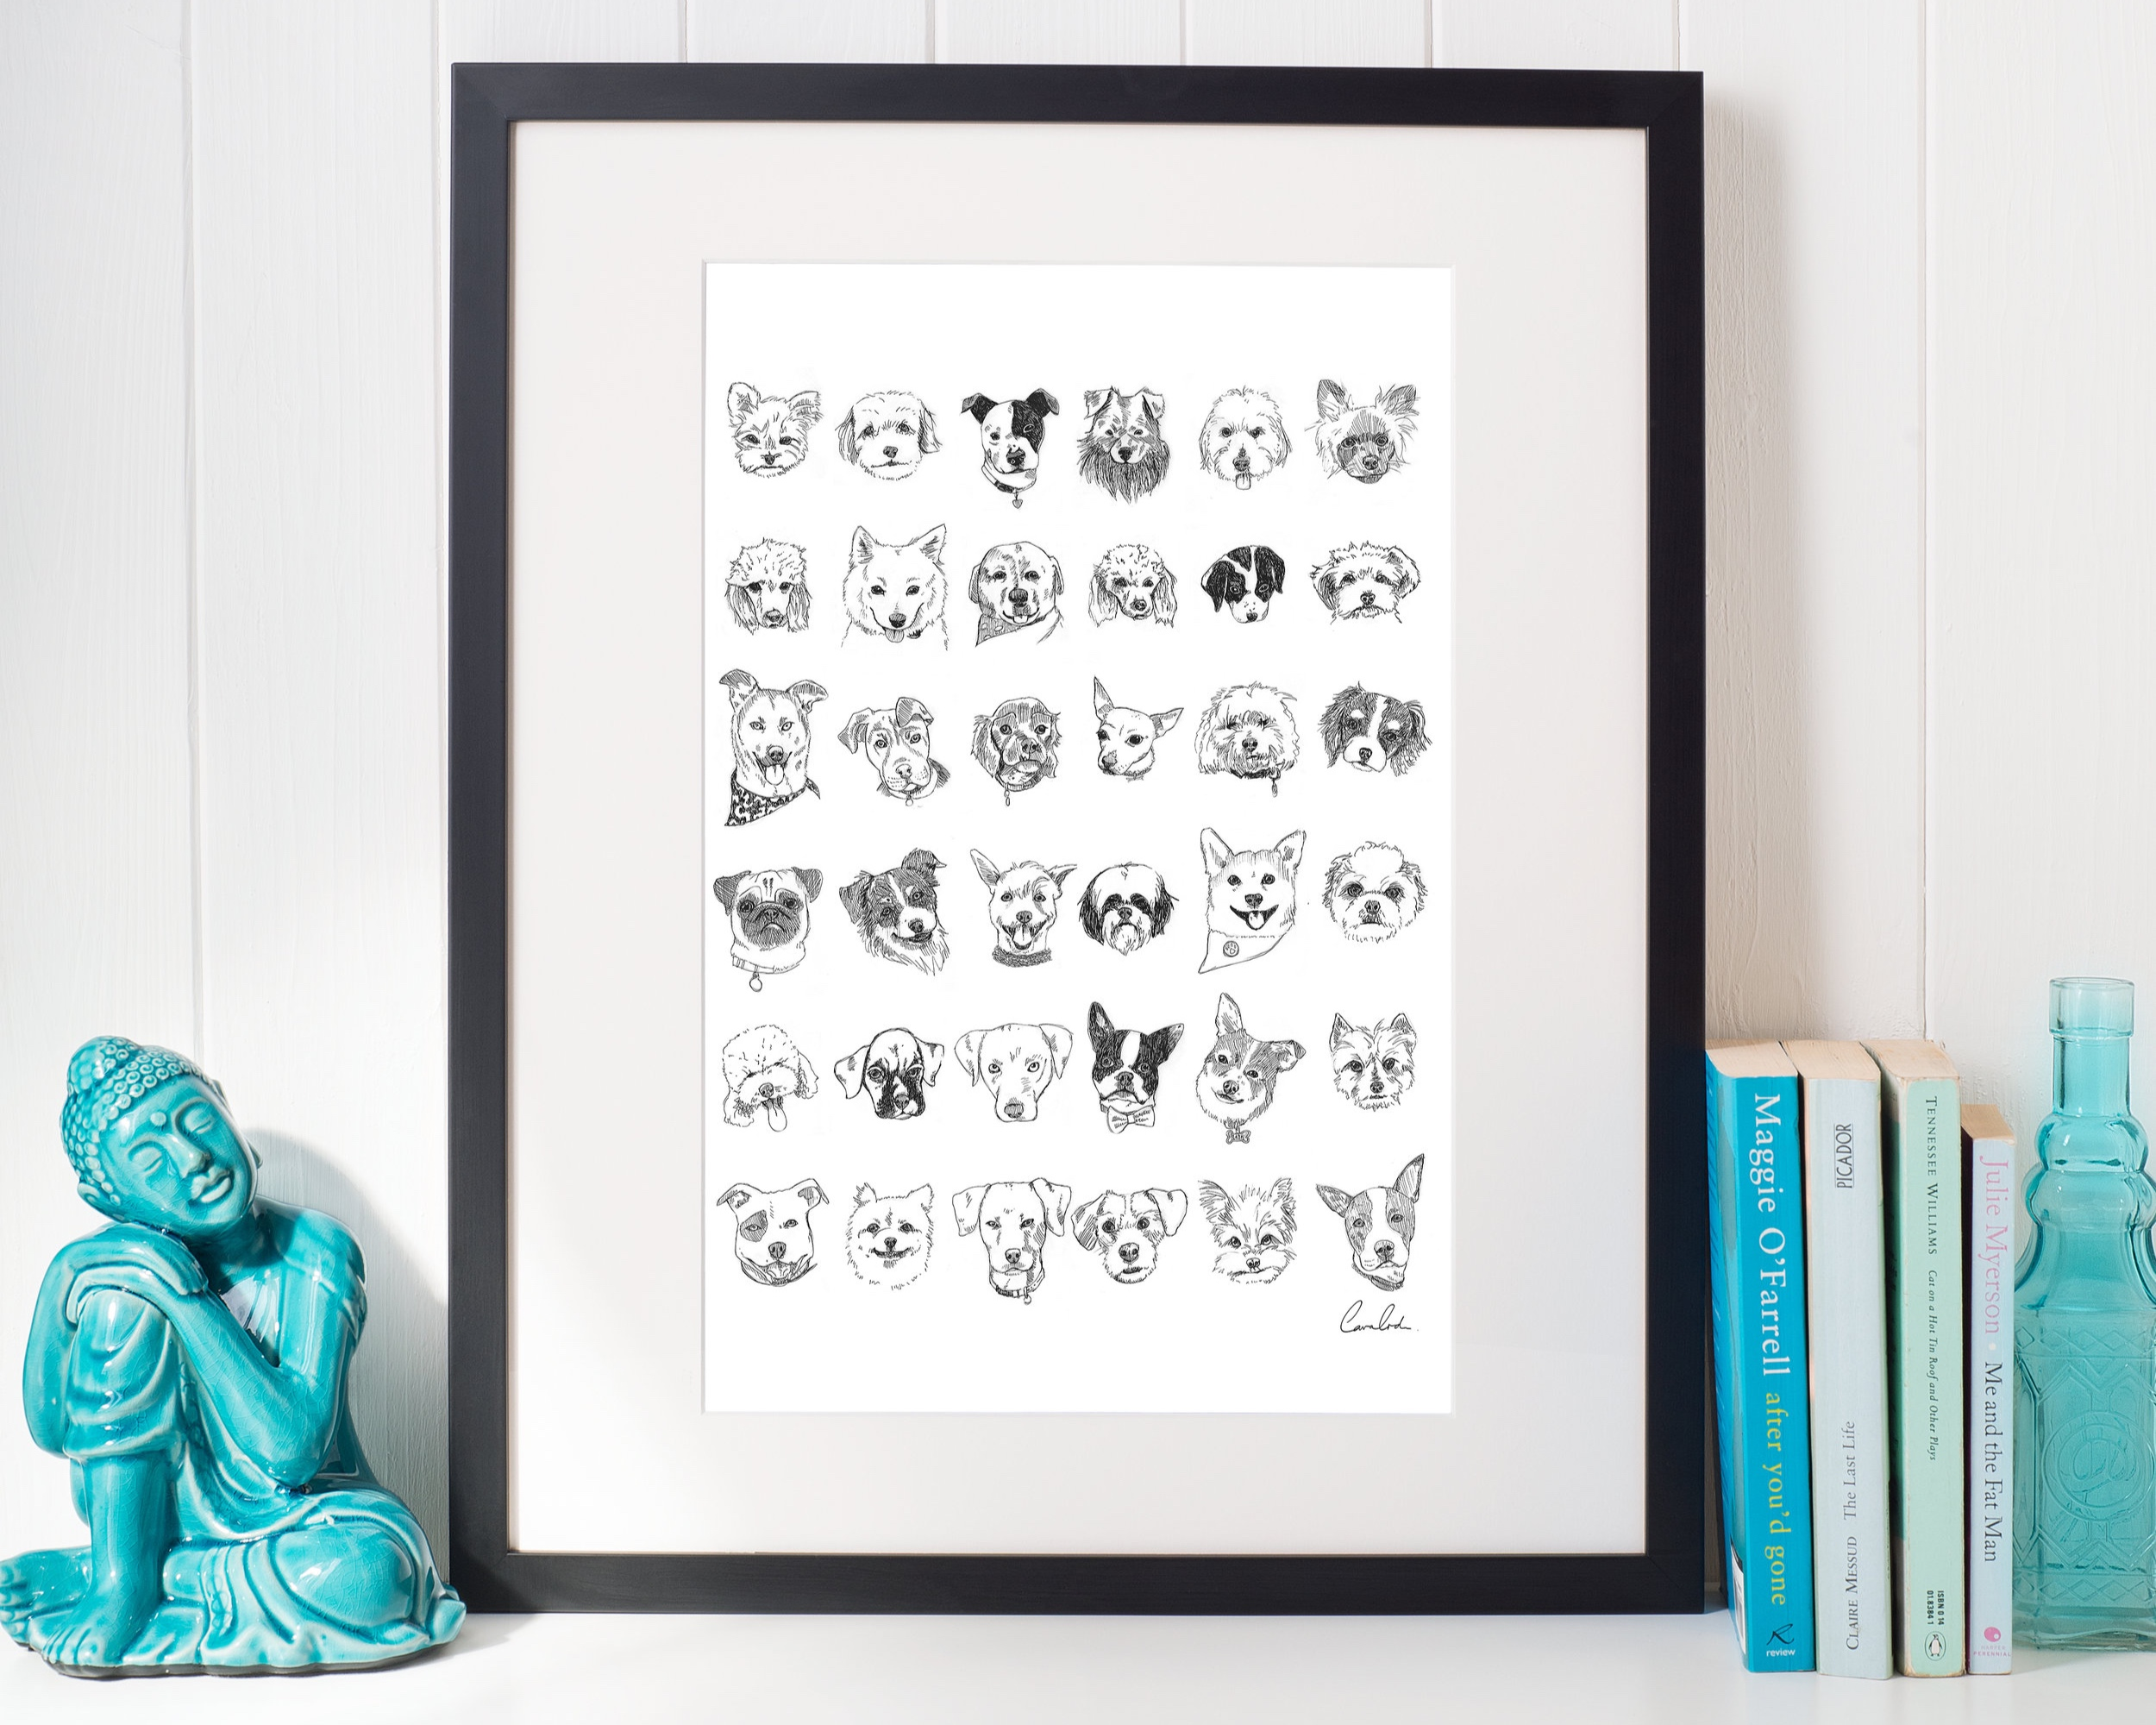 My dog inktober poster available on  society 6 store